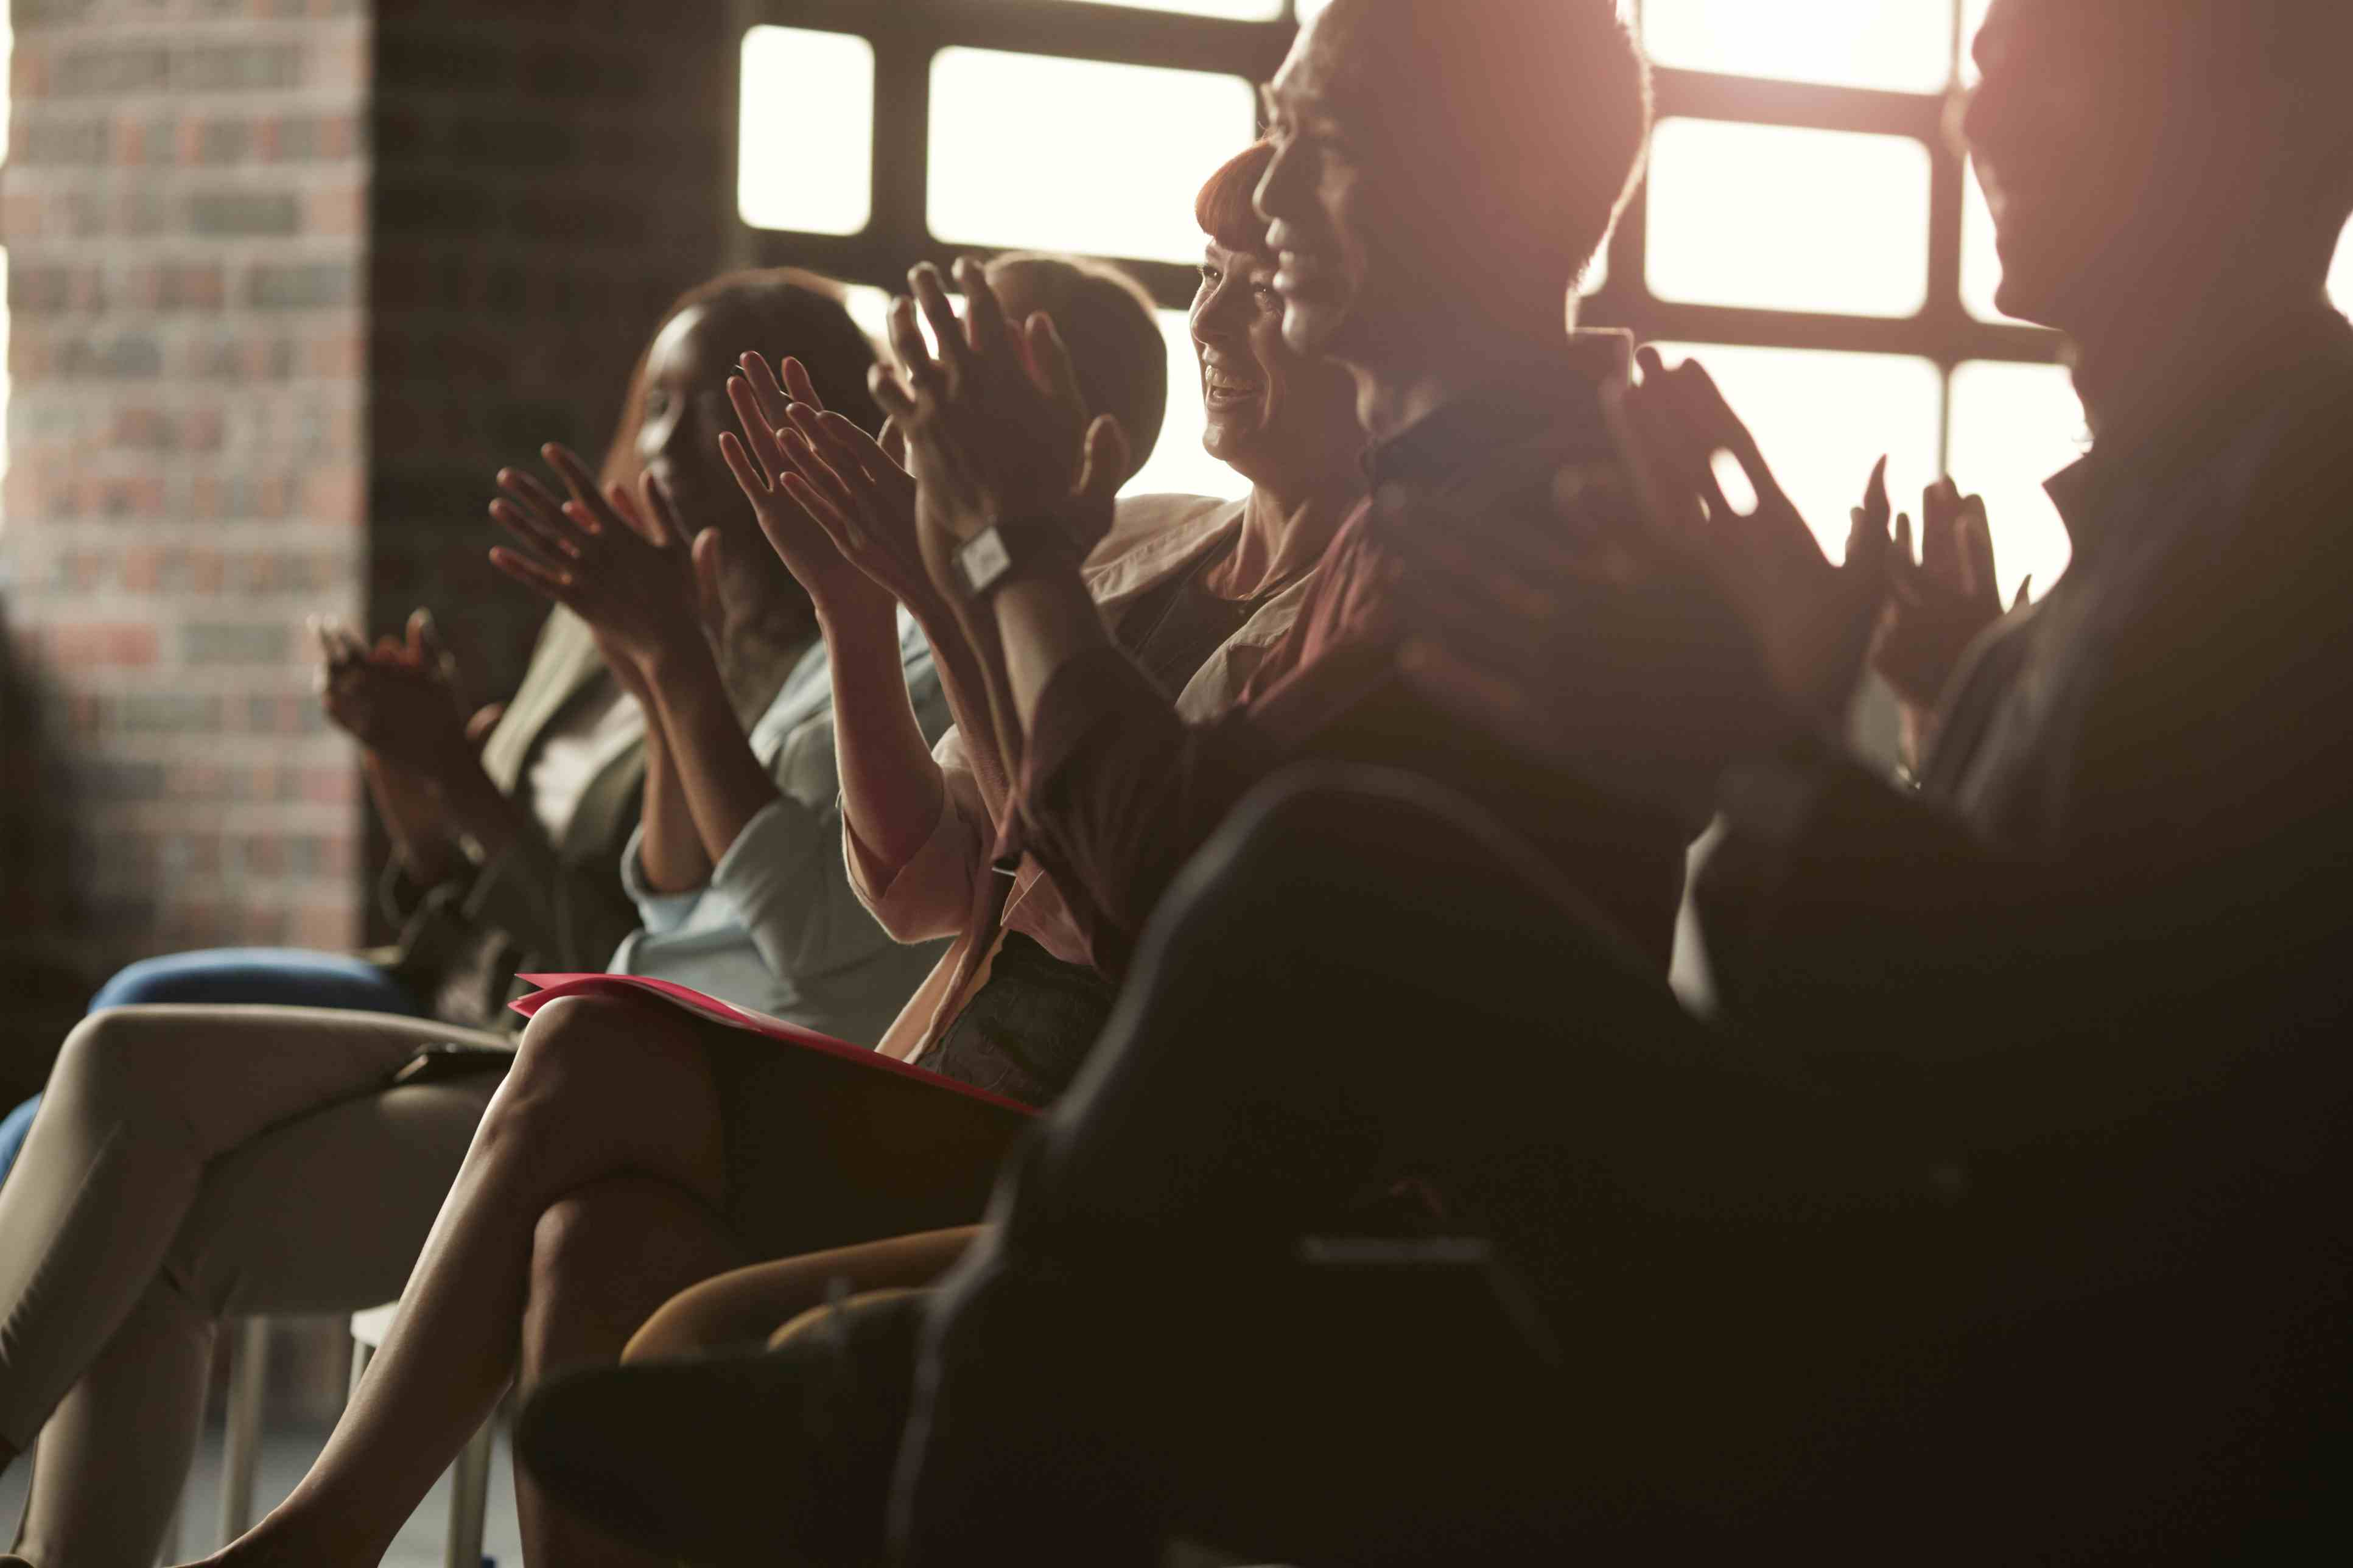 Group of businesspeople clapping at lecture